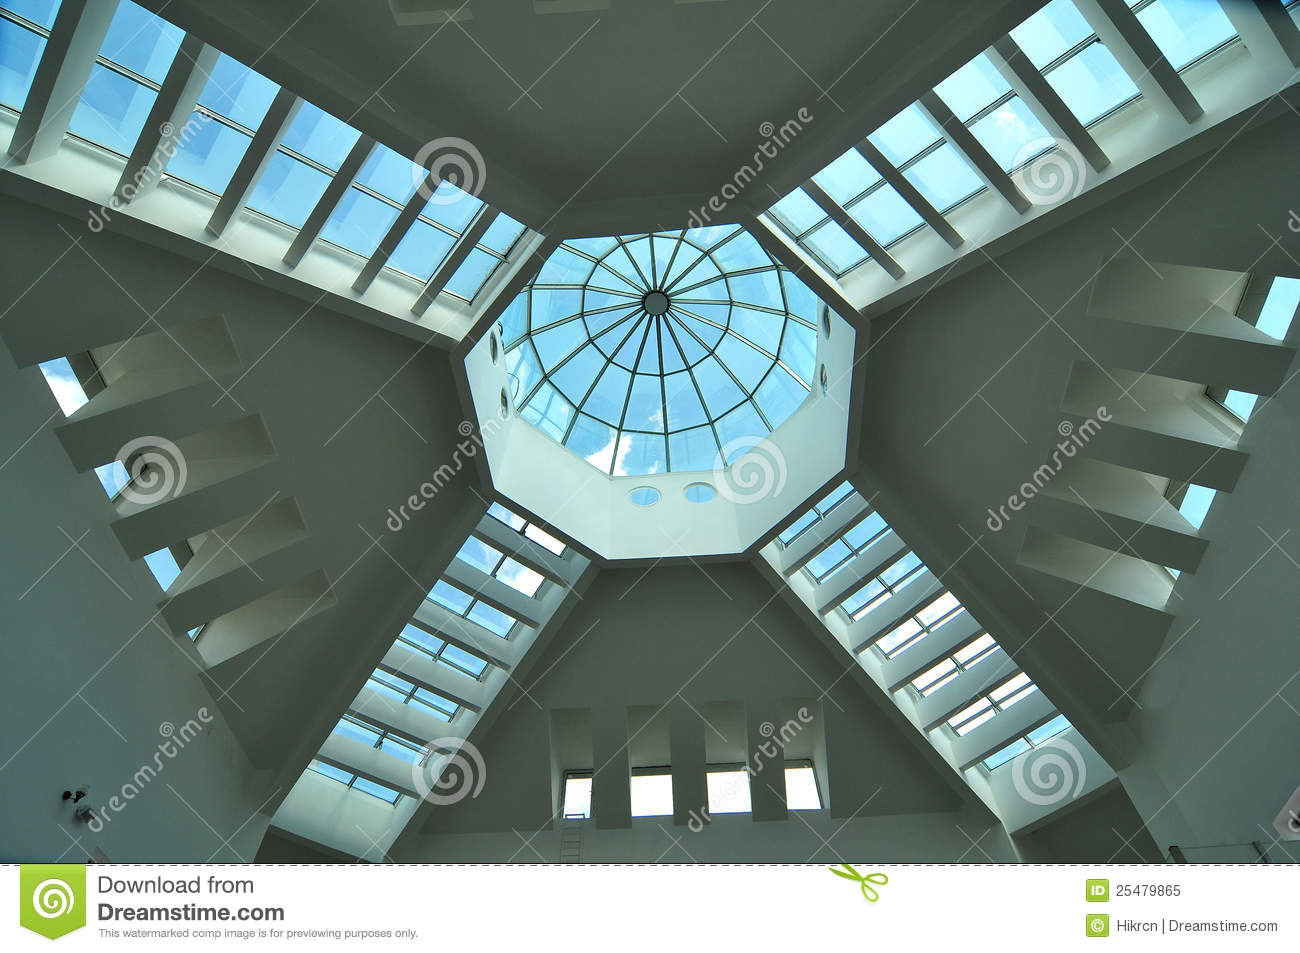 Royalty Free Stock Photo: Modern ceiling design